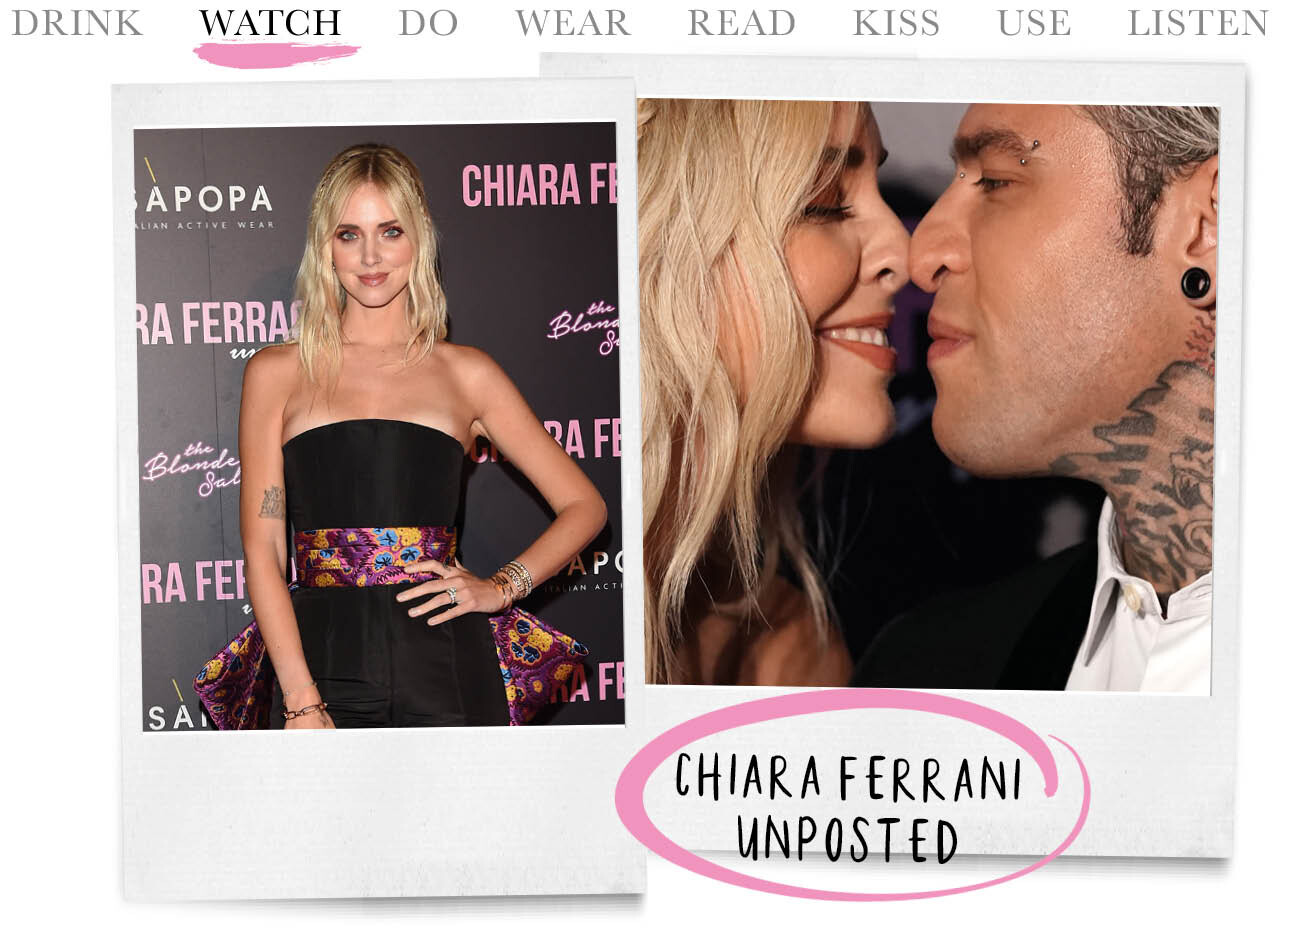 Today we watch - Chiara Ferragni Unposted